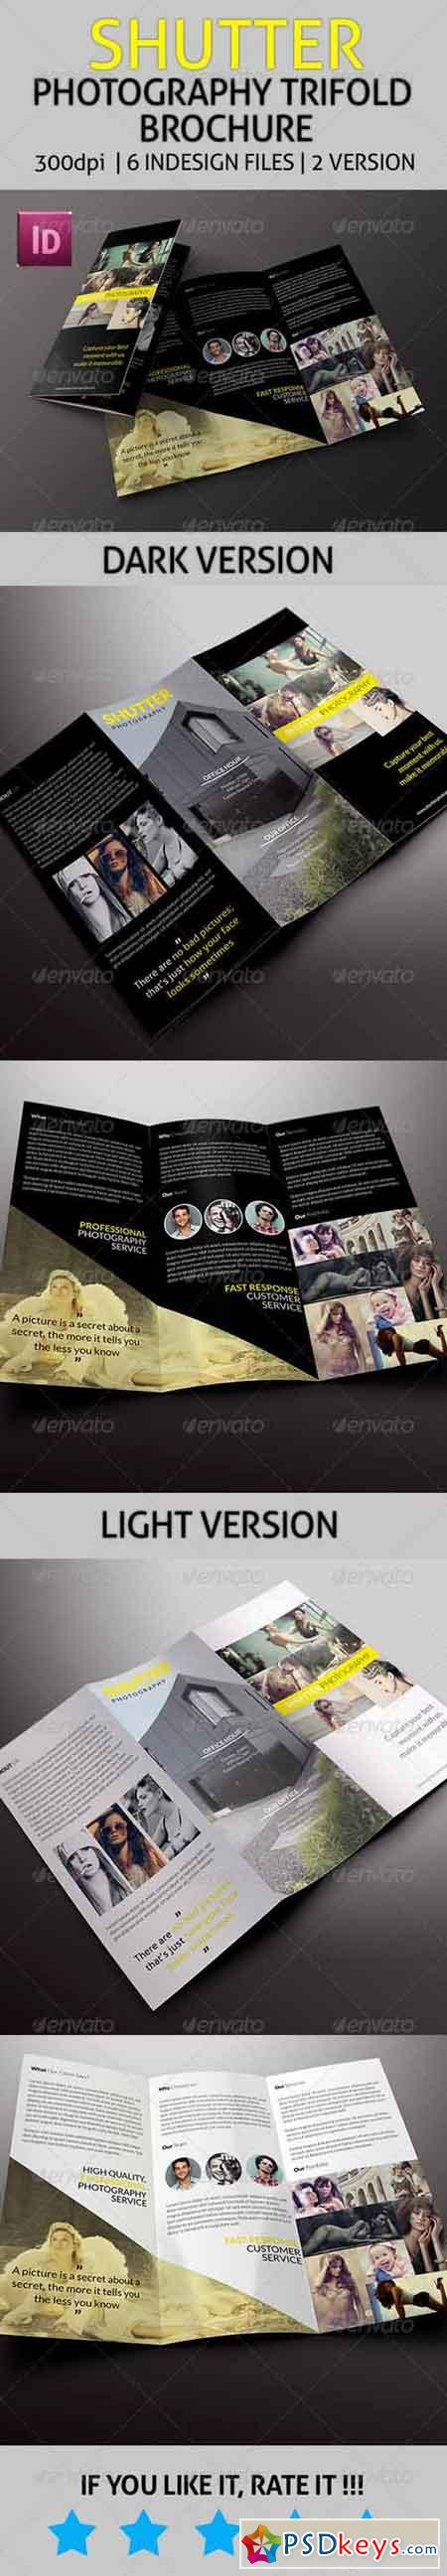 Shutter - Photography Trifold Brochure 7846761